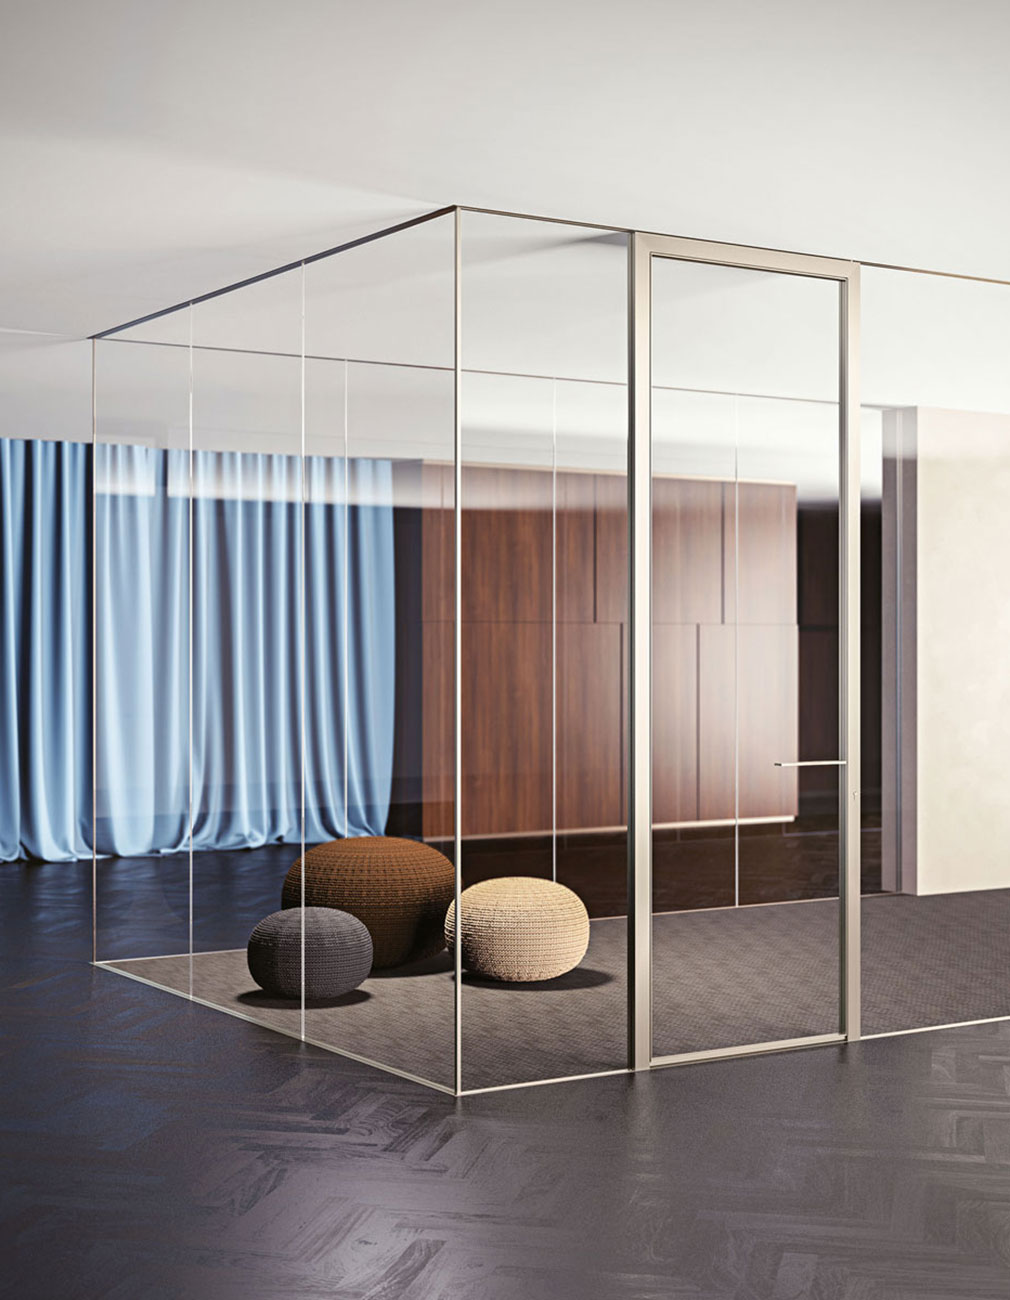 Walls and movable walls d 39 amico design for D amico arredamenti casoli